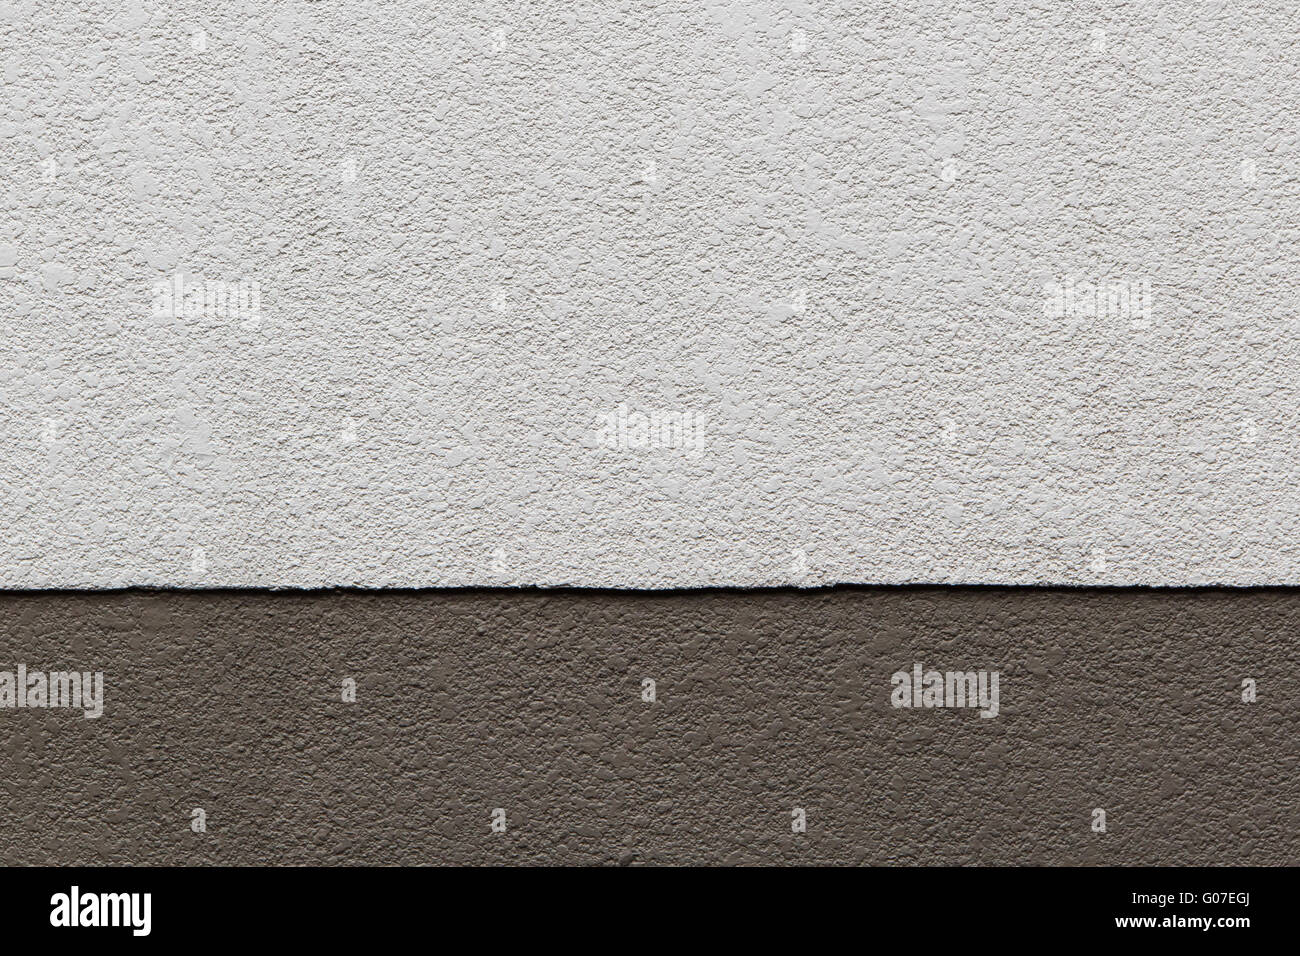 Two Tone of Brown Texture on Concrete Wall - Stock Image